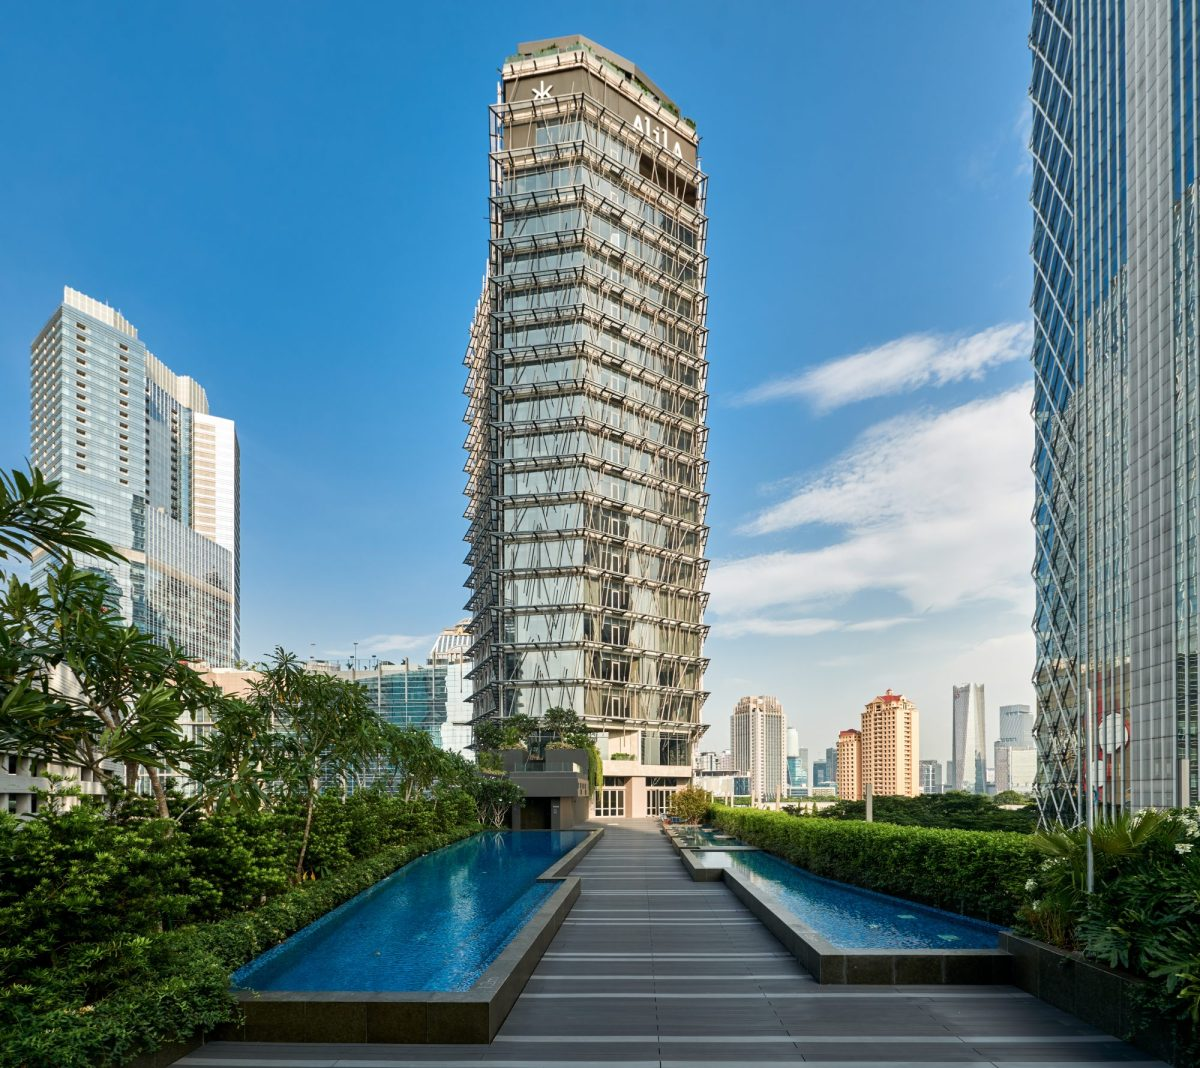 Alila Scbd, Jakarta: Of Chic Pads And Hip Hangouts